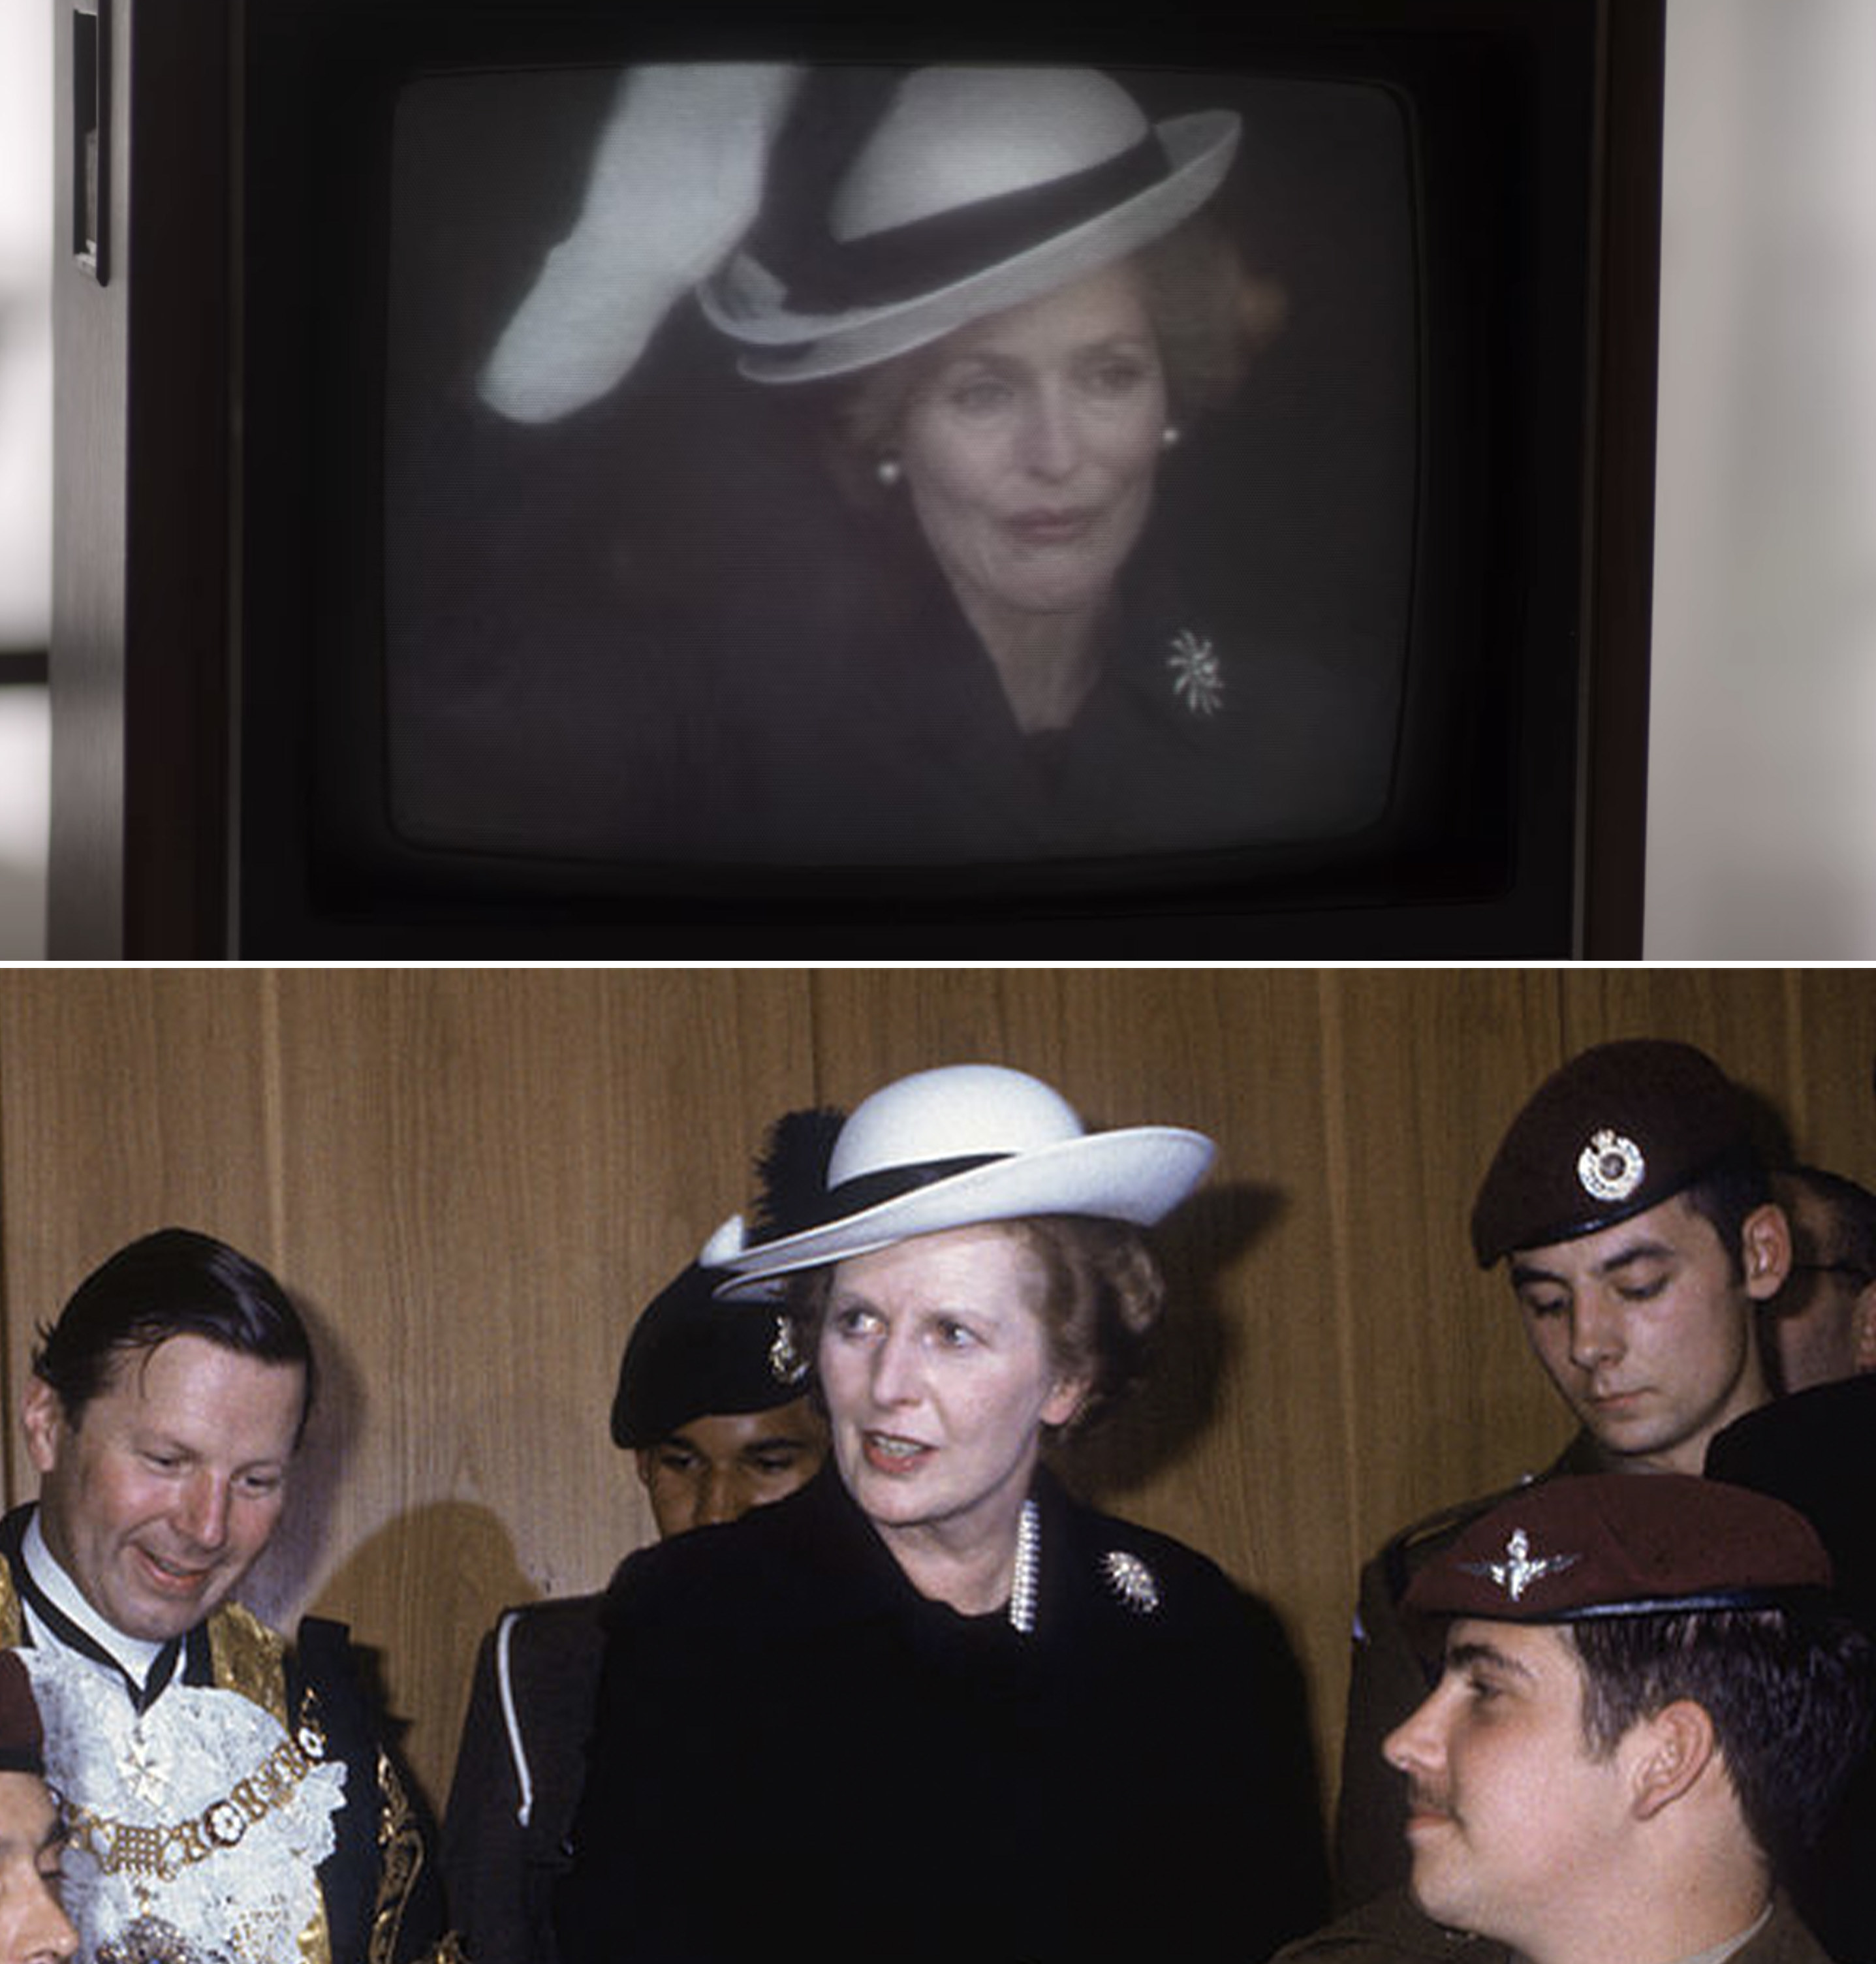 Margaret Thatcher in a tilted brimmed hat adorned with feathers